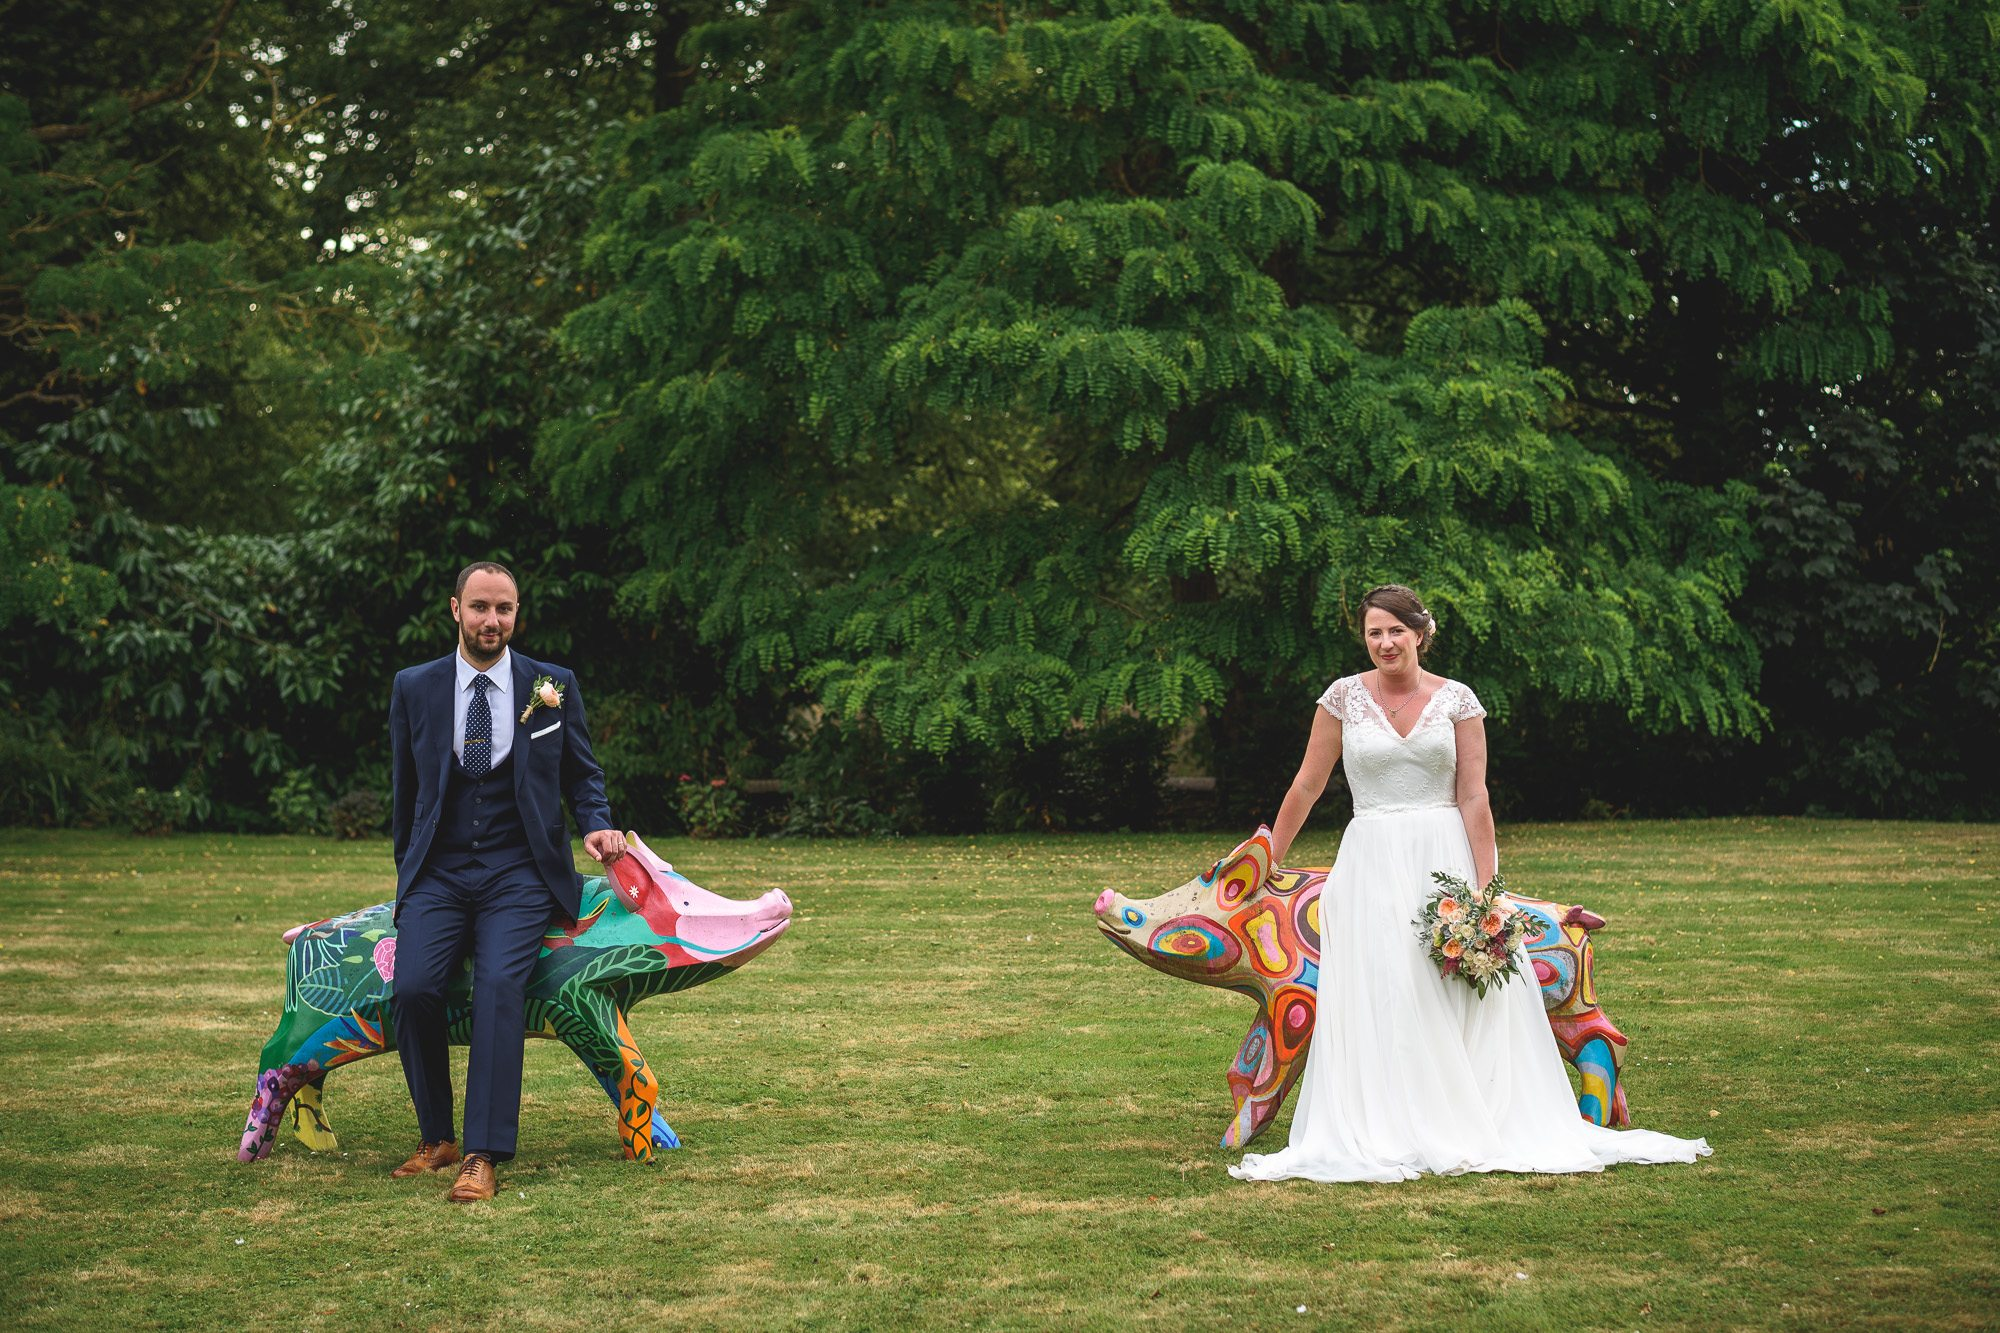 Jem and Andy - - The Rectory at Crudwell wedding photography (164 of 195)